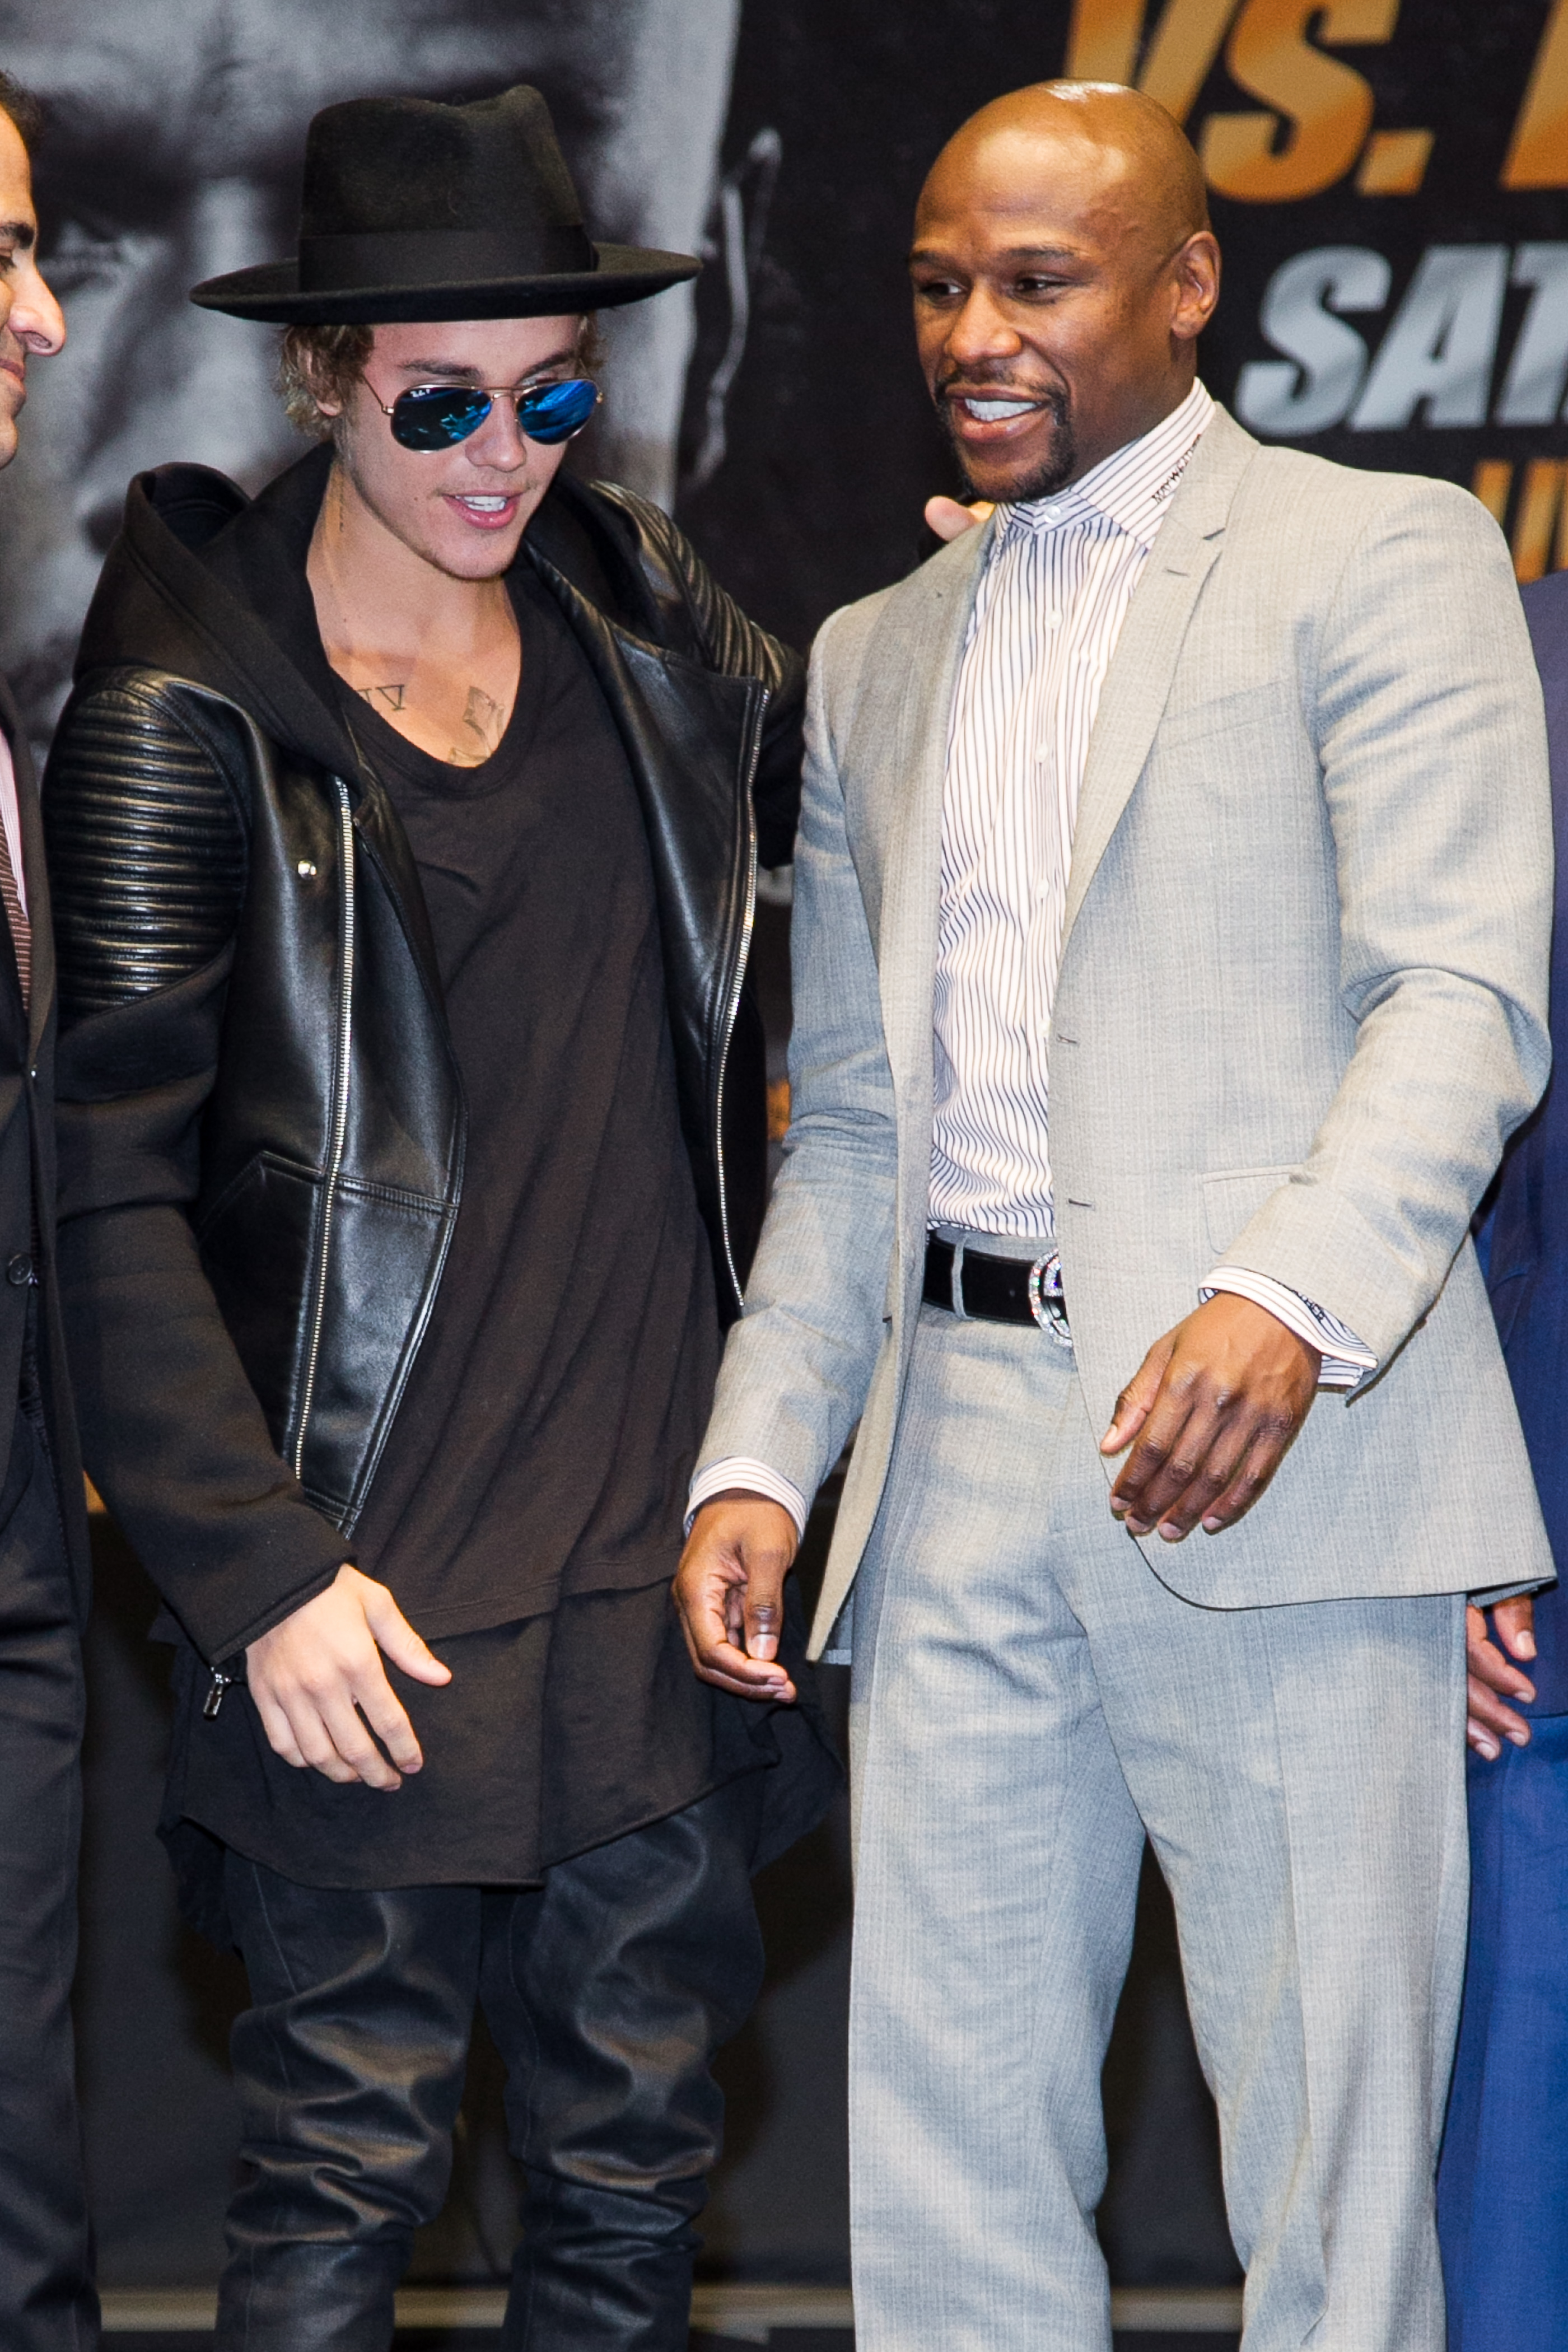 Pacquiao and Mayweather face off in Hollywood | South China Morning Post